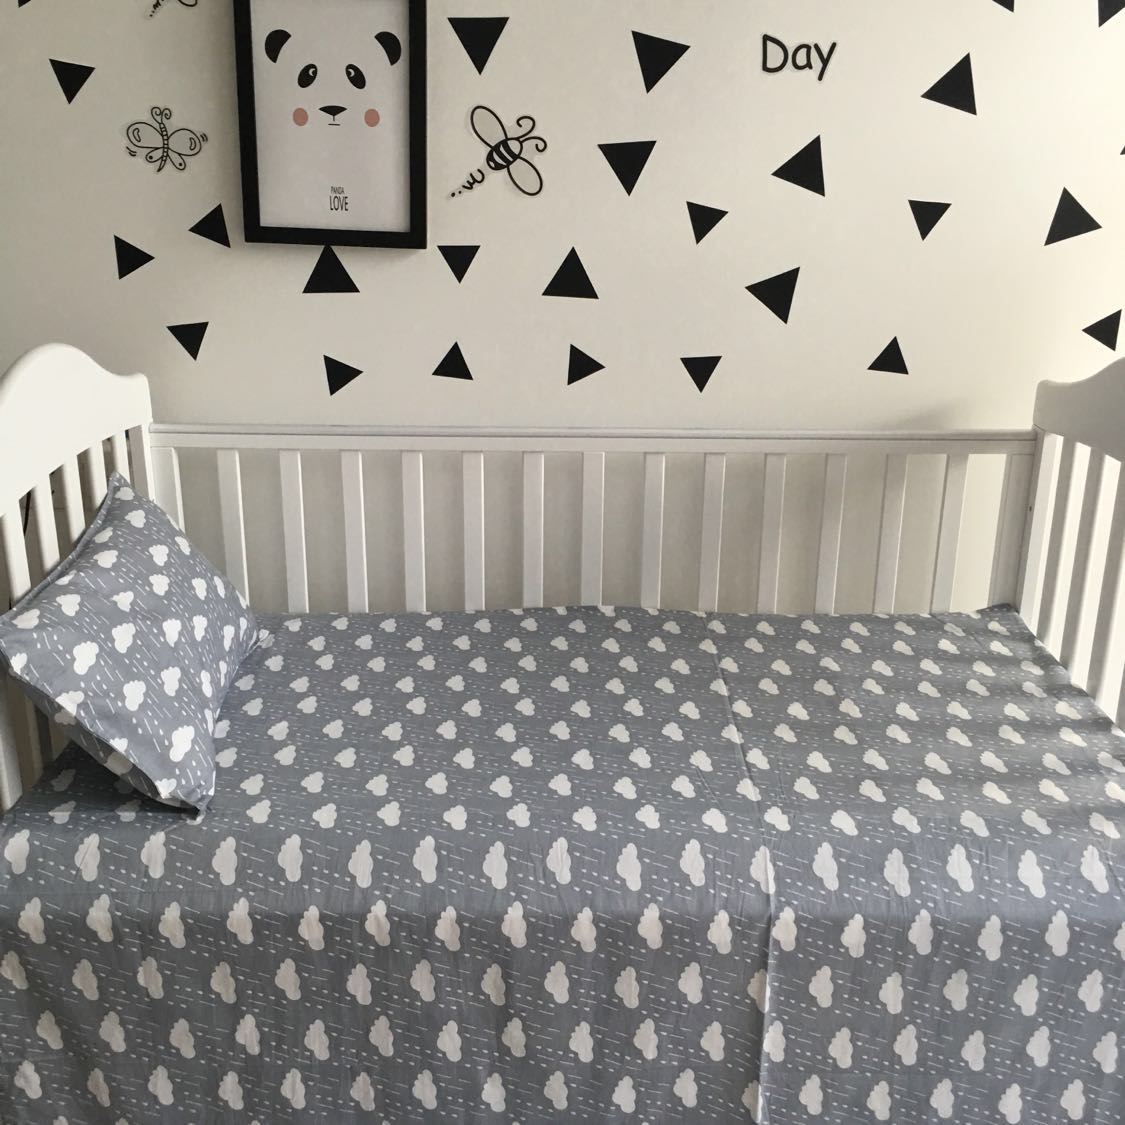 Baby bed sheet pattern - Aliexpress Com Buy 110 150 Cm Cotton Baby Bed Sheets Printed Fitted Crib Cot Sheet Baby Without Stimulating Newborns Boy Girl Favorite Crib Bedding From